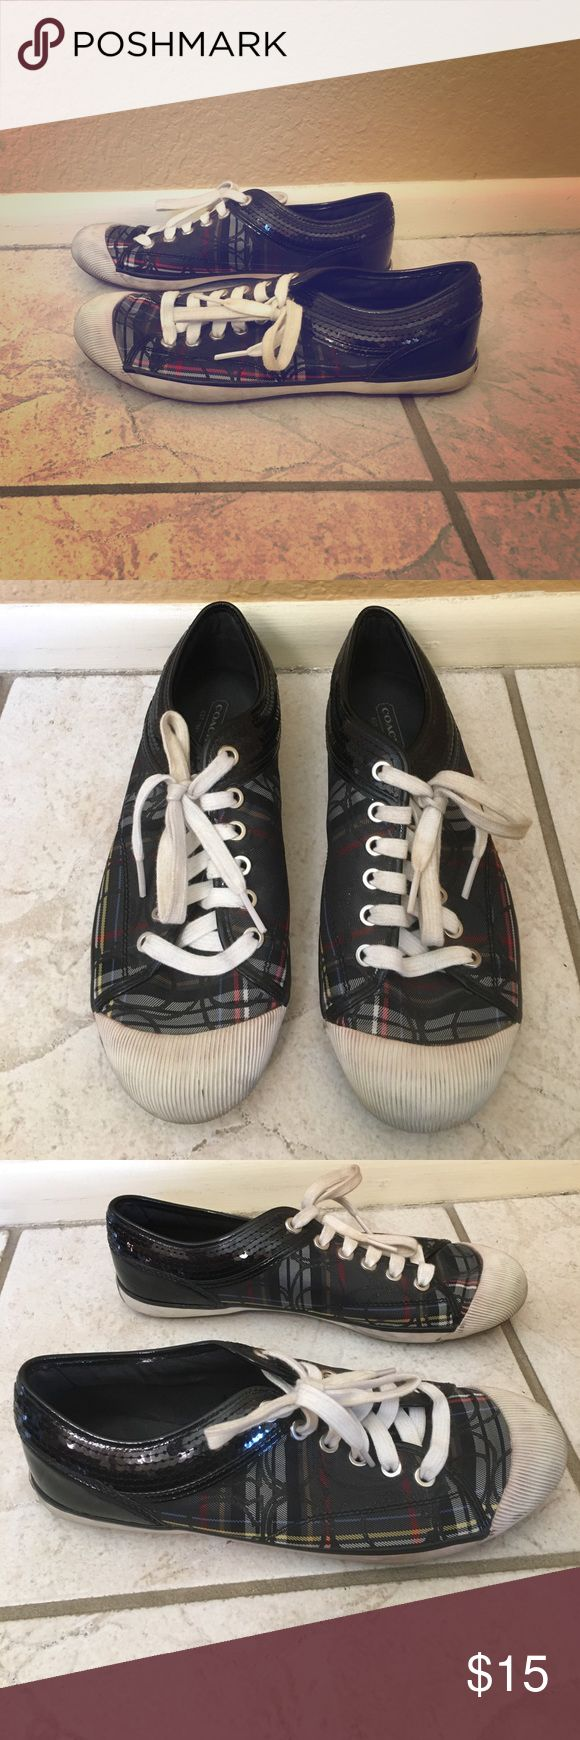 Coach Size 8.5 Tennis Shoes Coach tennis shoes in a multicolor plaid. These shoes are a size 8.5 and have been used. There is slight wear on the heel of the shoe and the white toe is scuffed. You could likely fix the toe of the shoe easily. Coach Shoes Sneakers